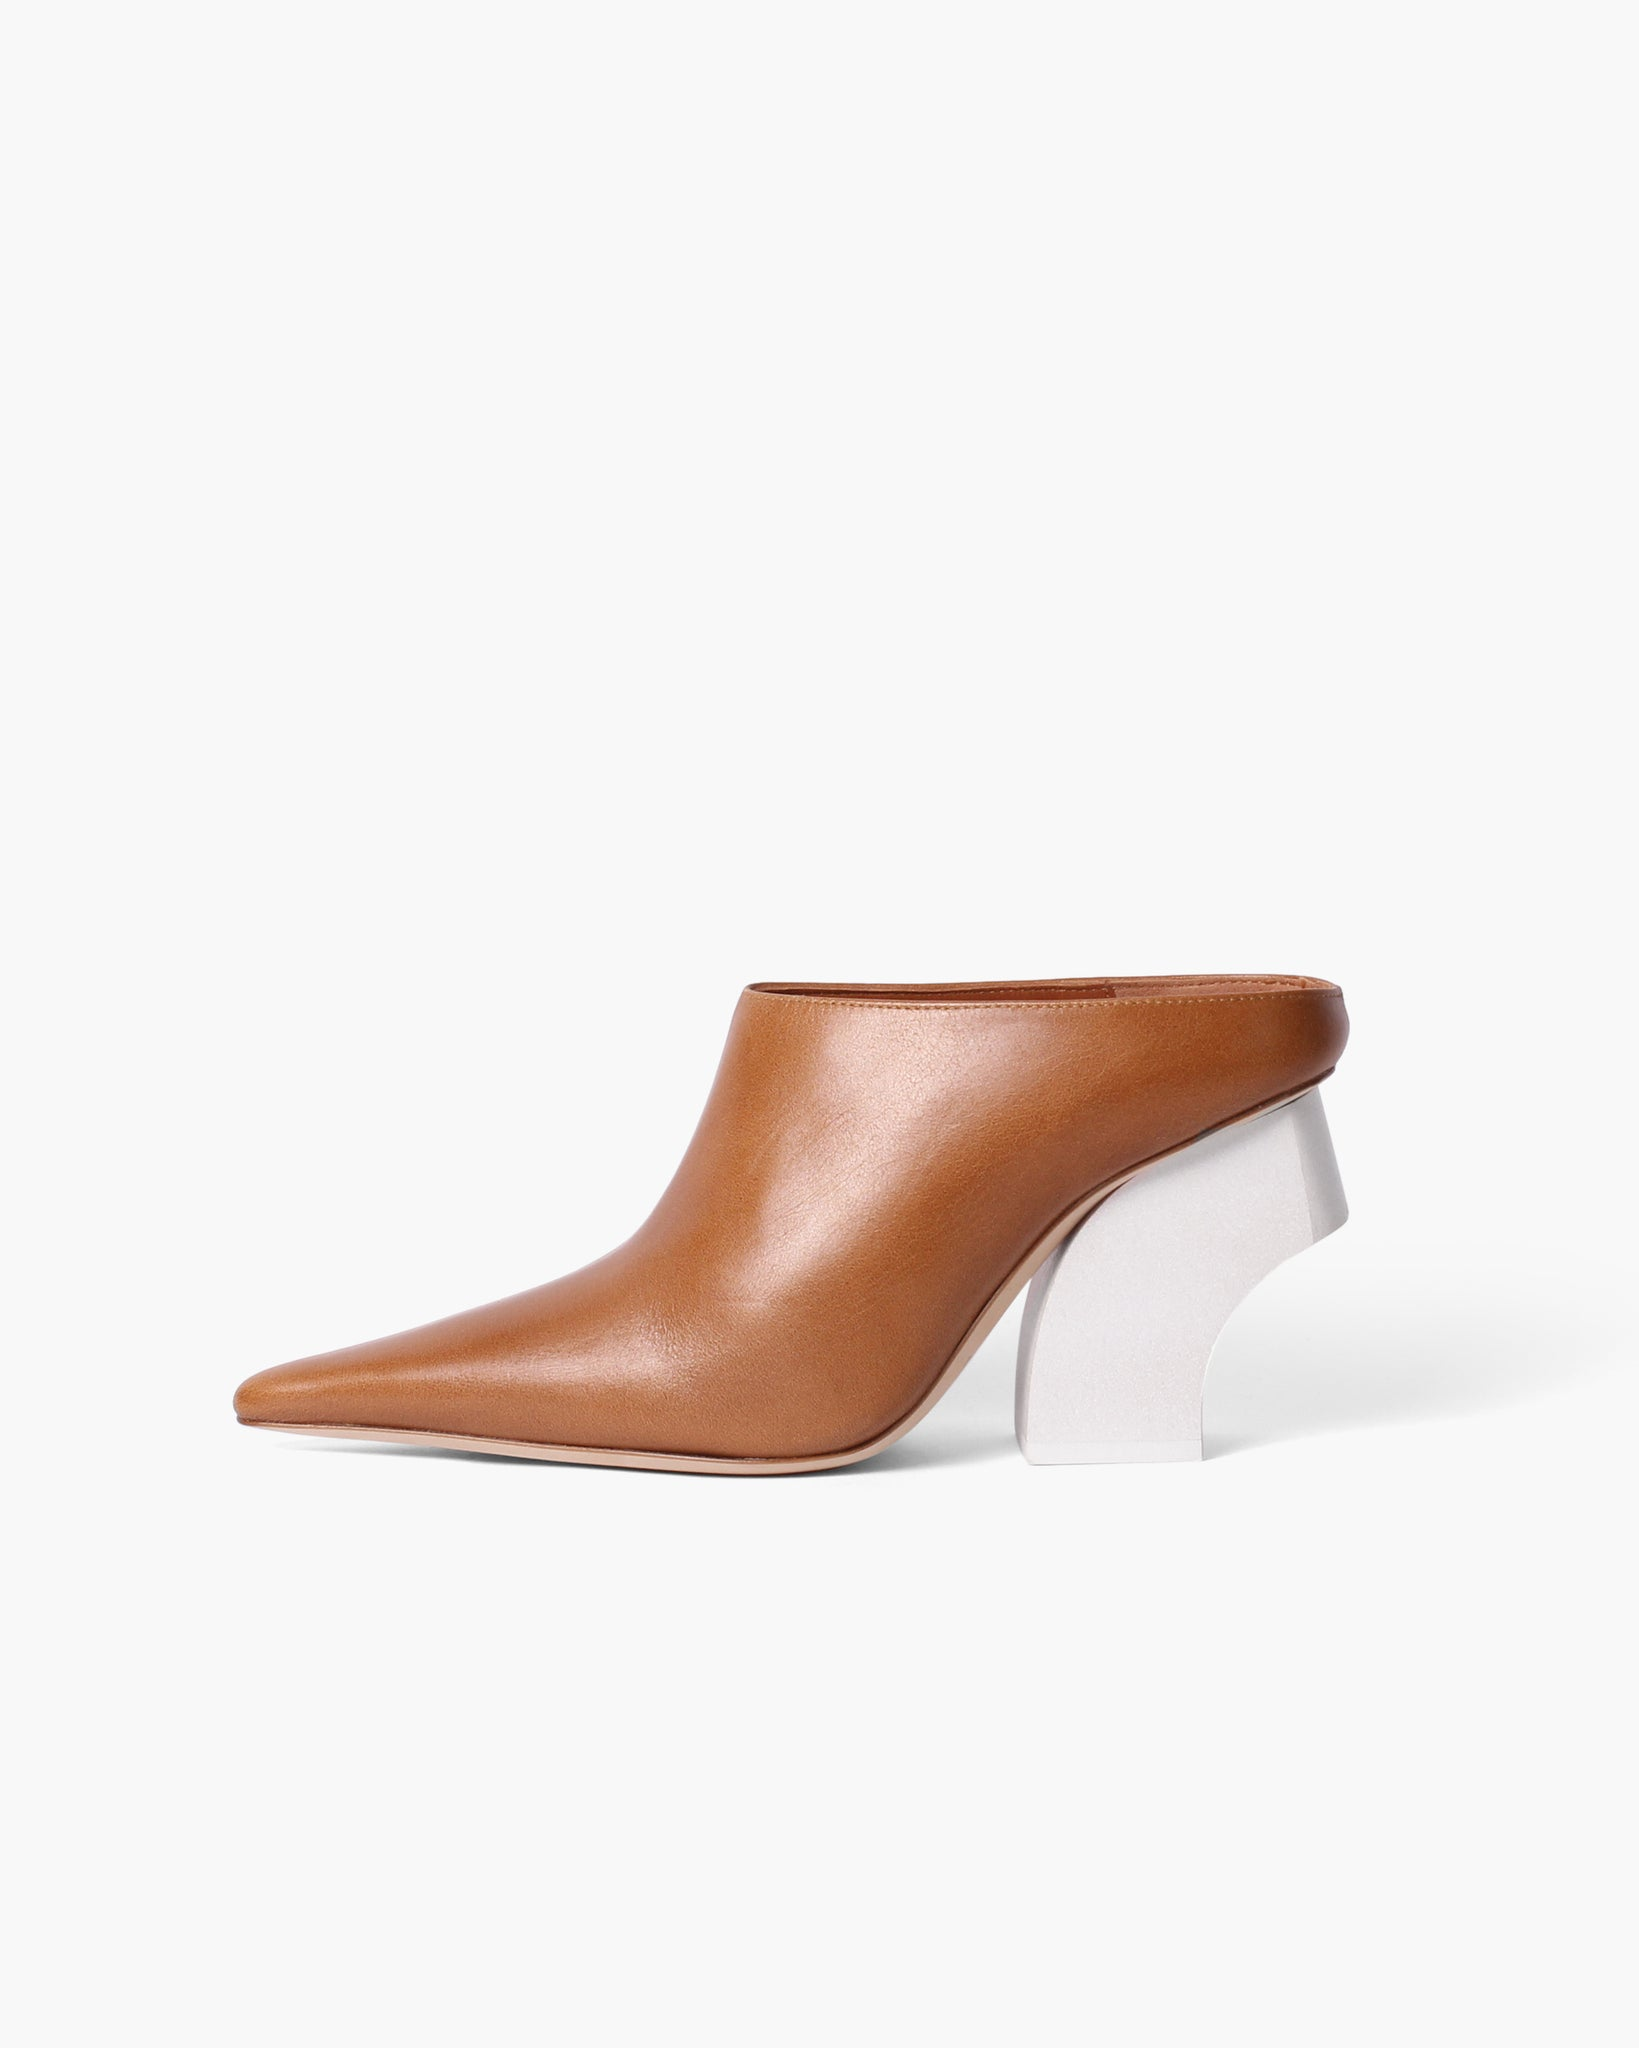 Yasmin Mules Leather Brown with Curved White Wooden Heels - SPECIAL PRICE